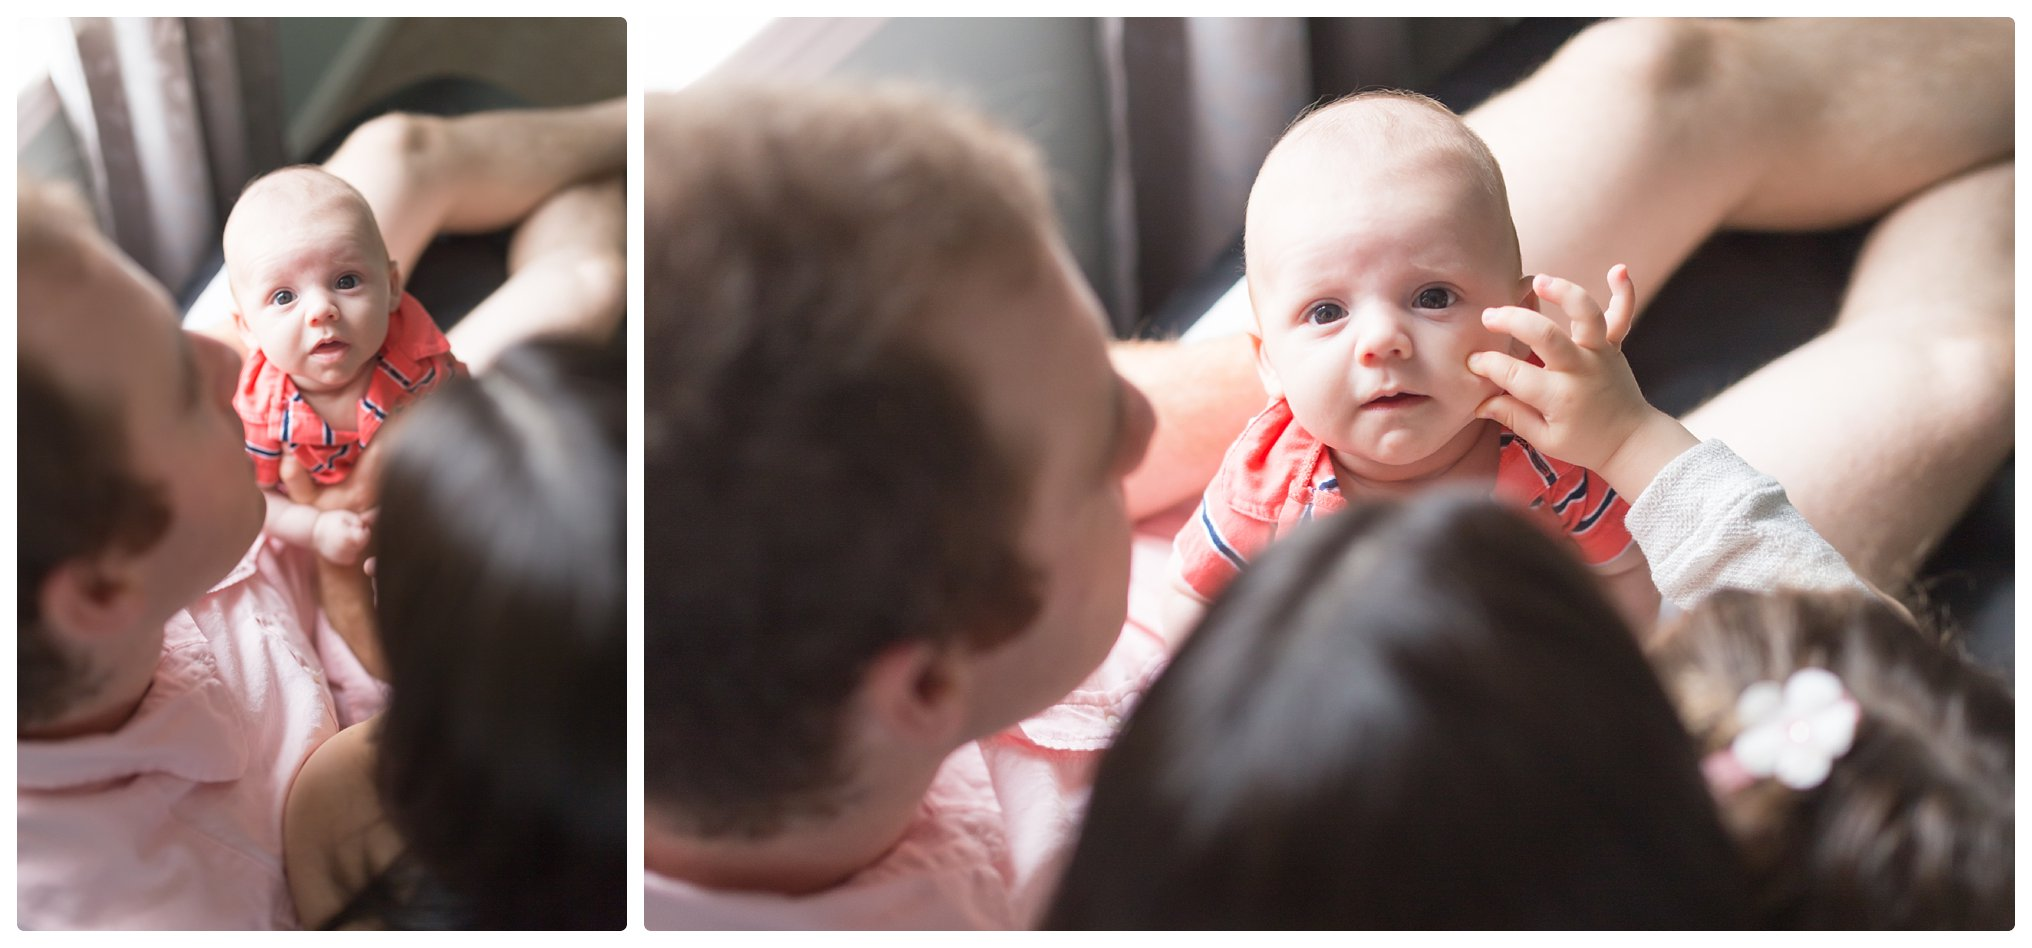 Toddler pinches baby's cheek during in-home lifestyle photo session in Norton Massachusetts